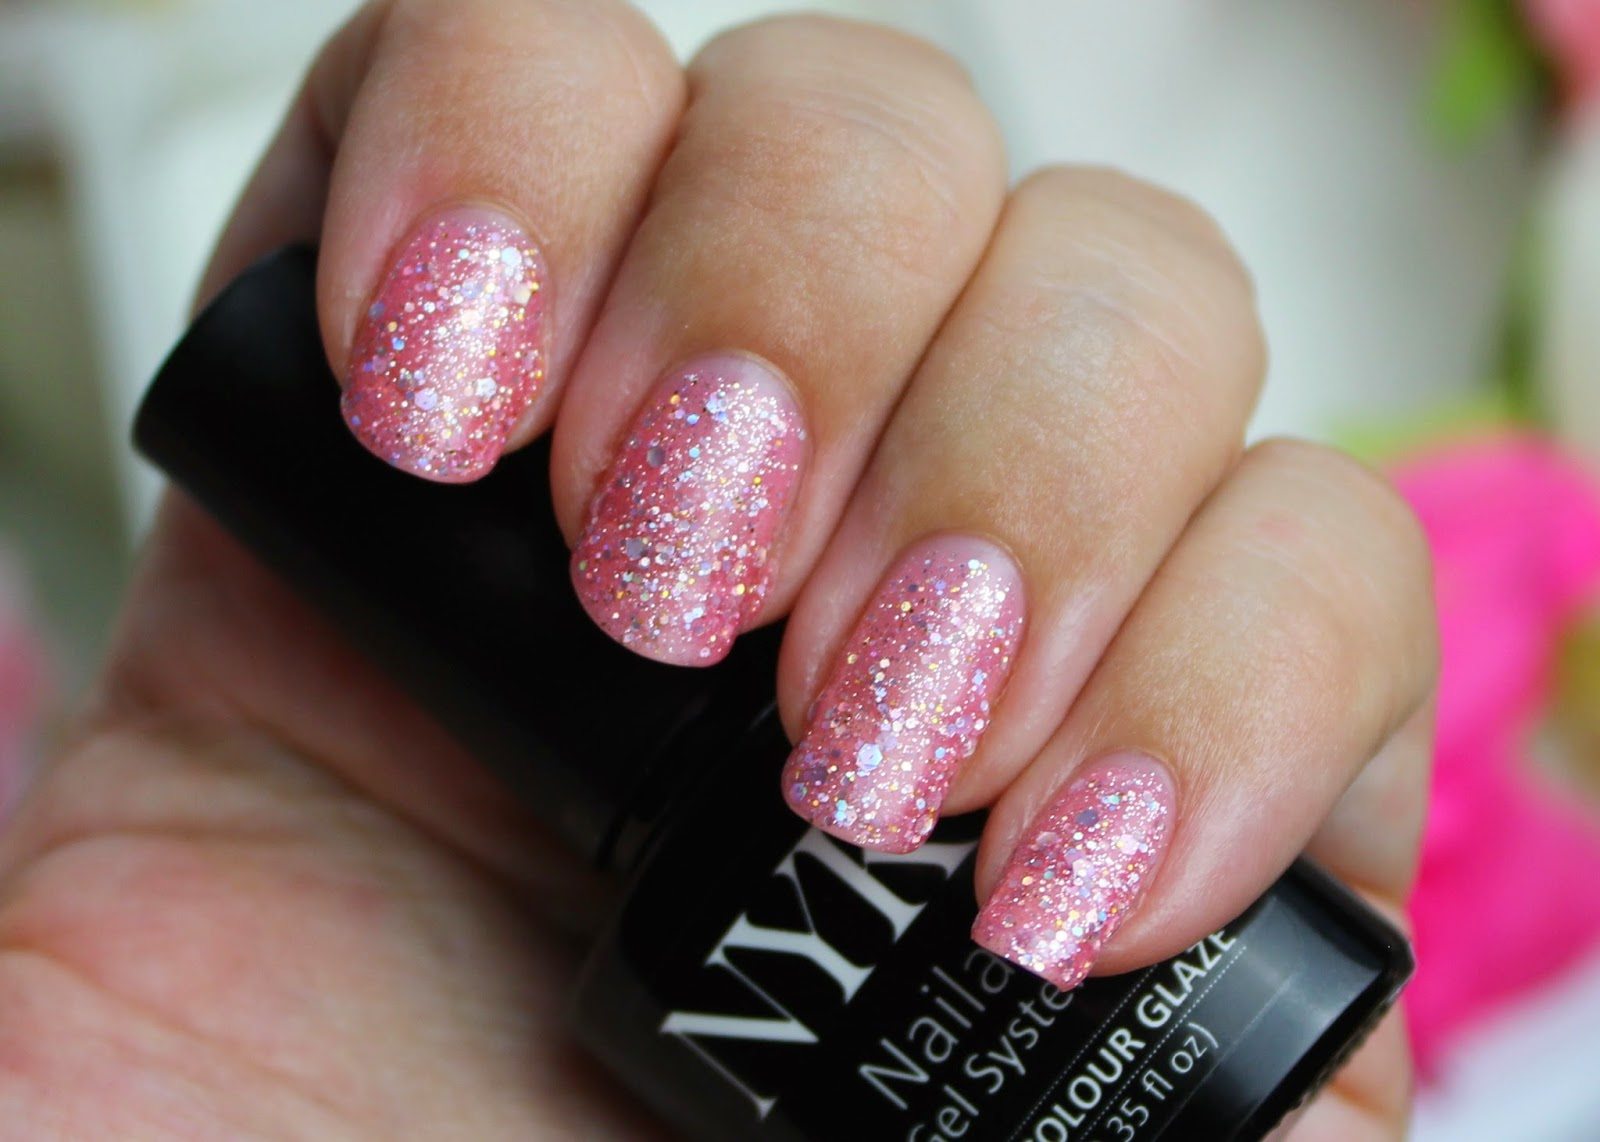 flutter and sparkle: Nails: NYK1 Secrets Nailac at home professional